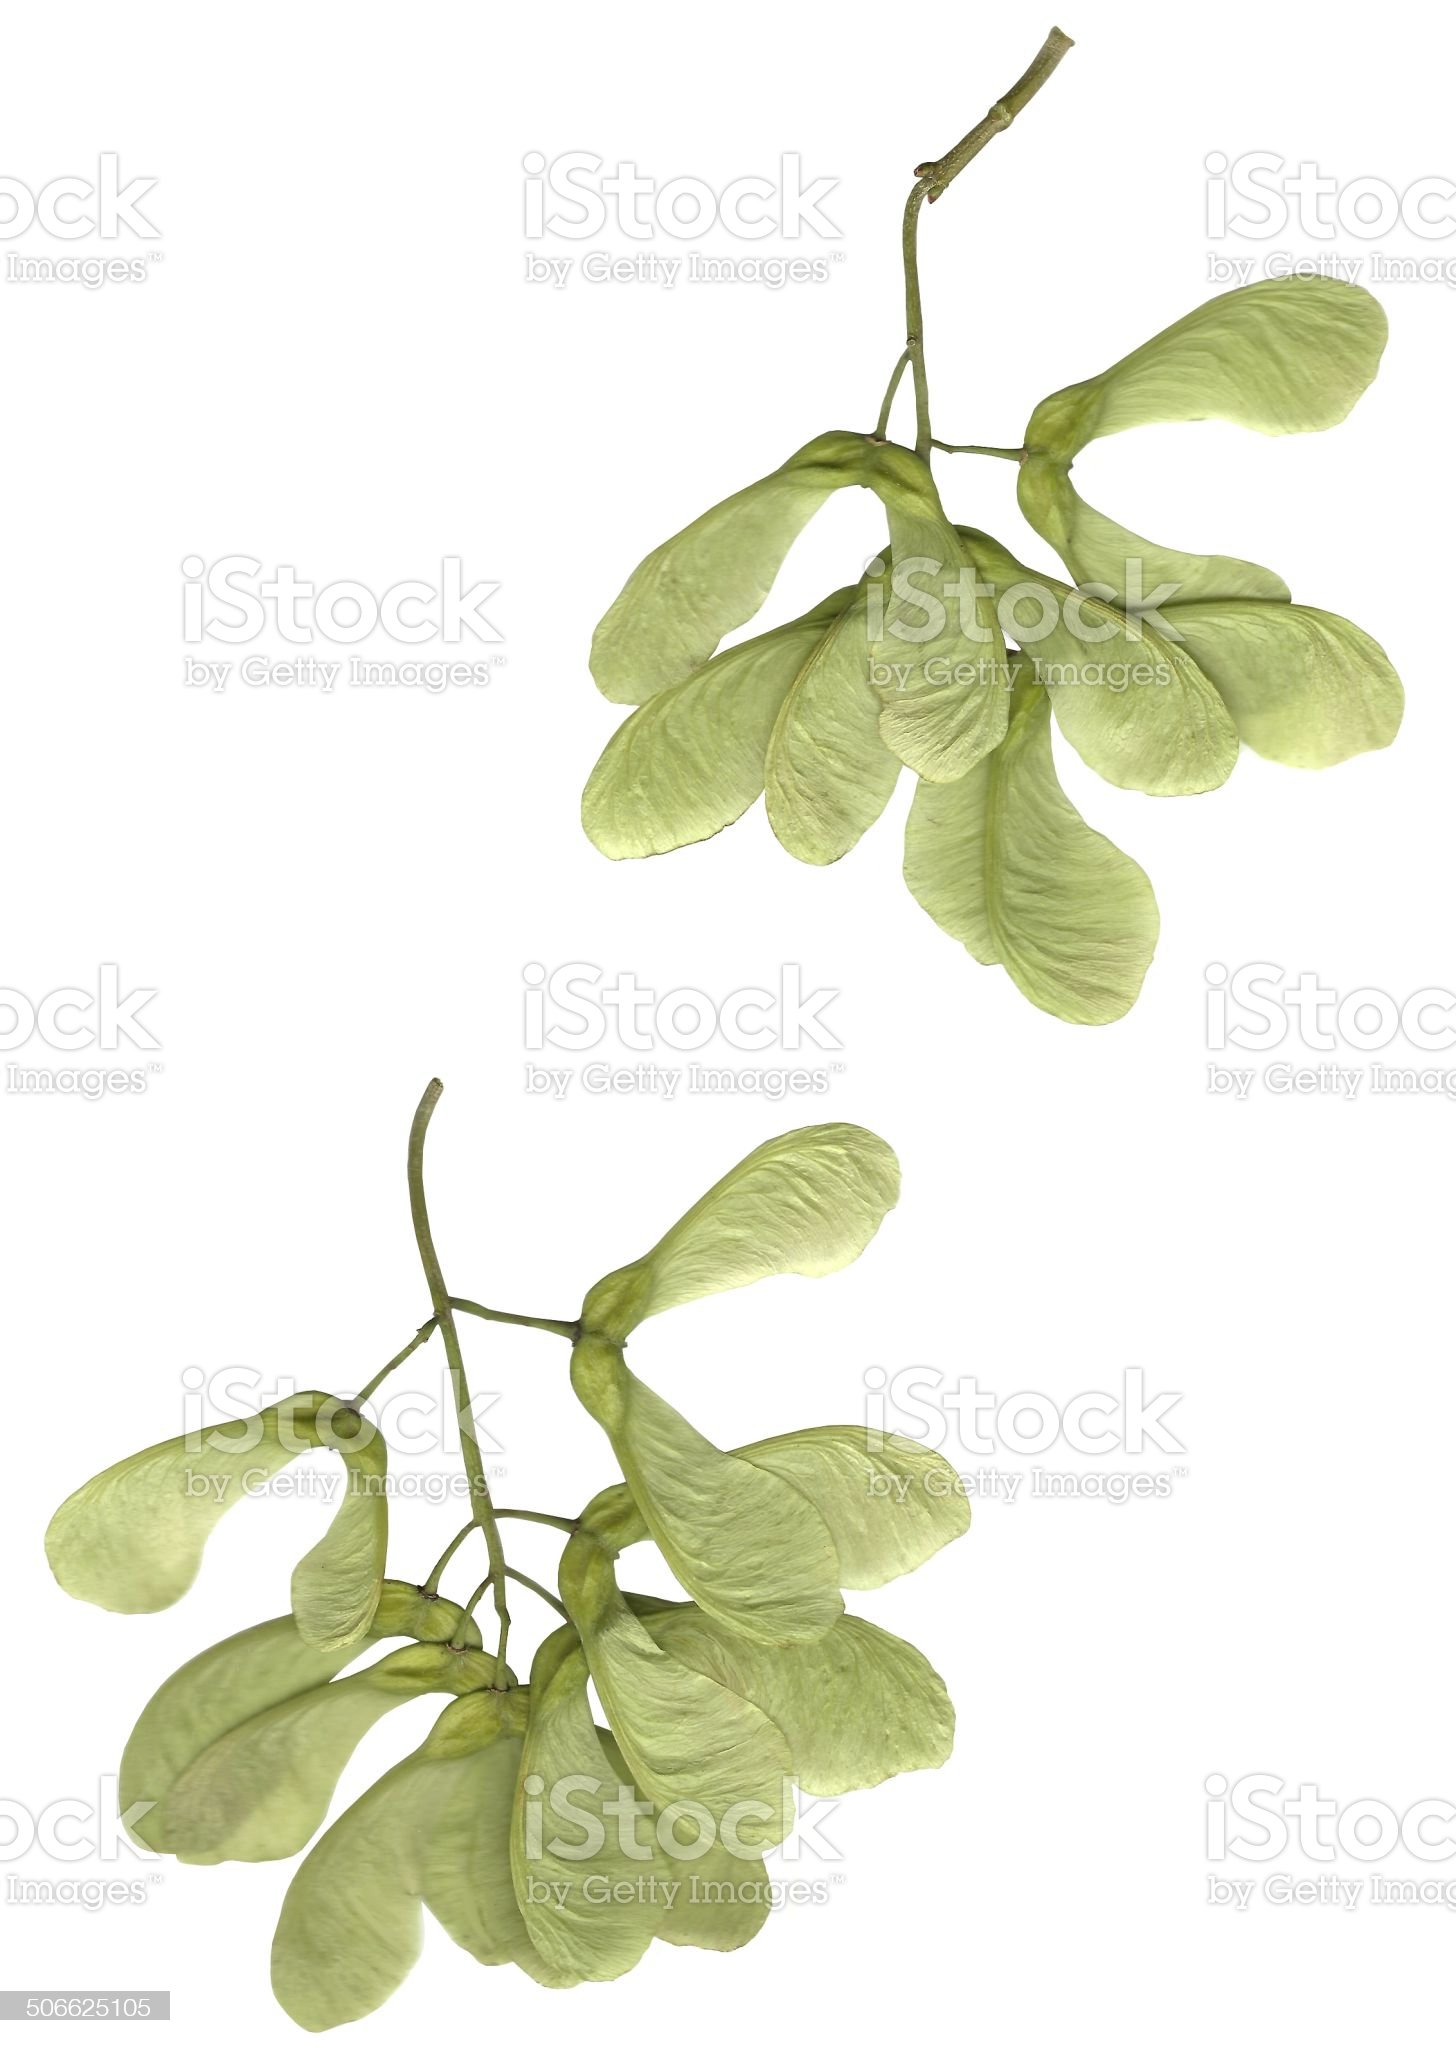 seeds of sycamore maple tree royalty-free stock photo